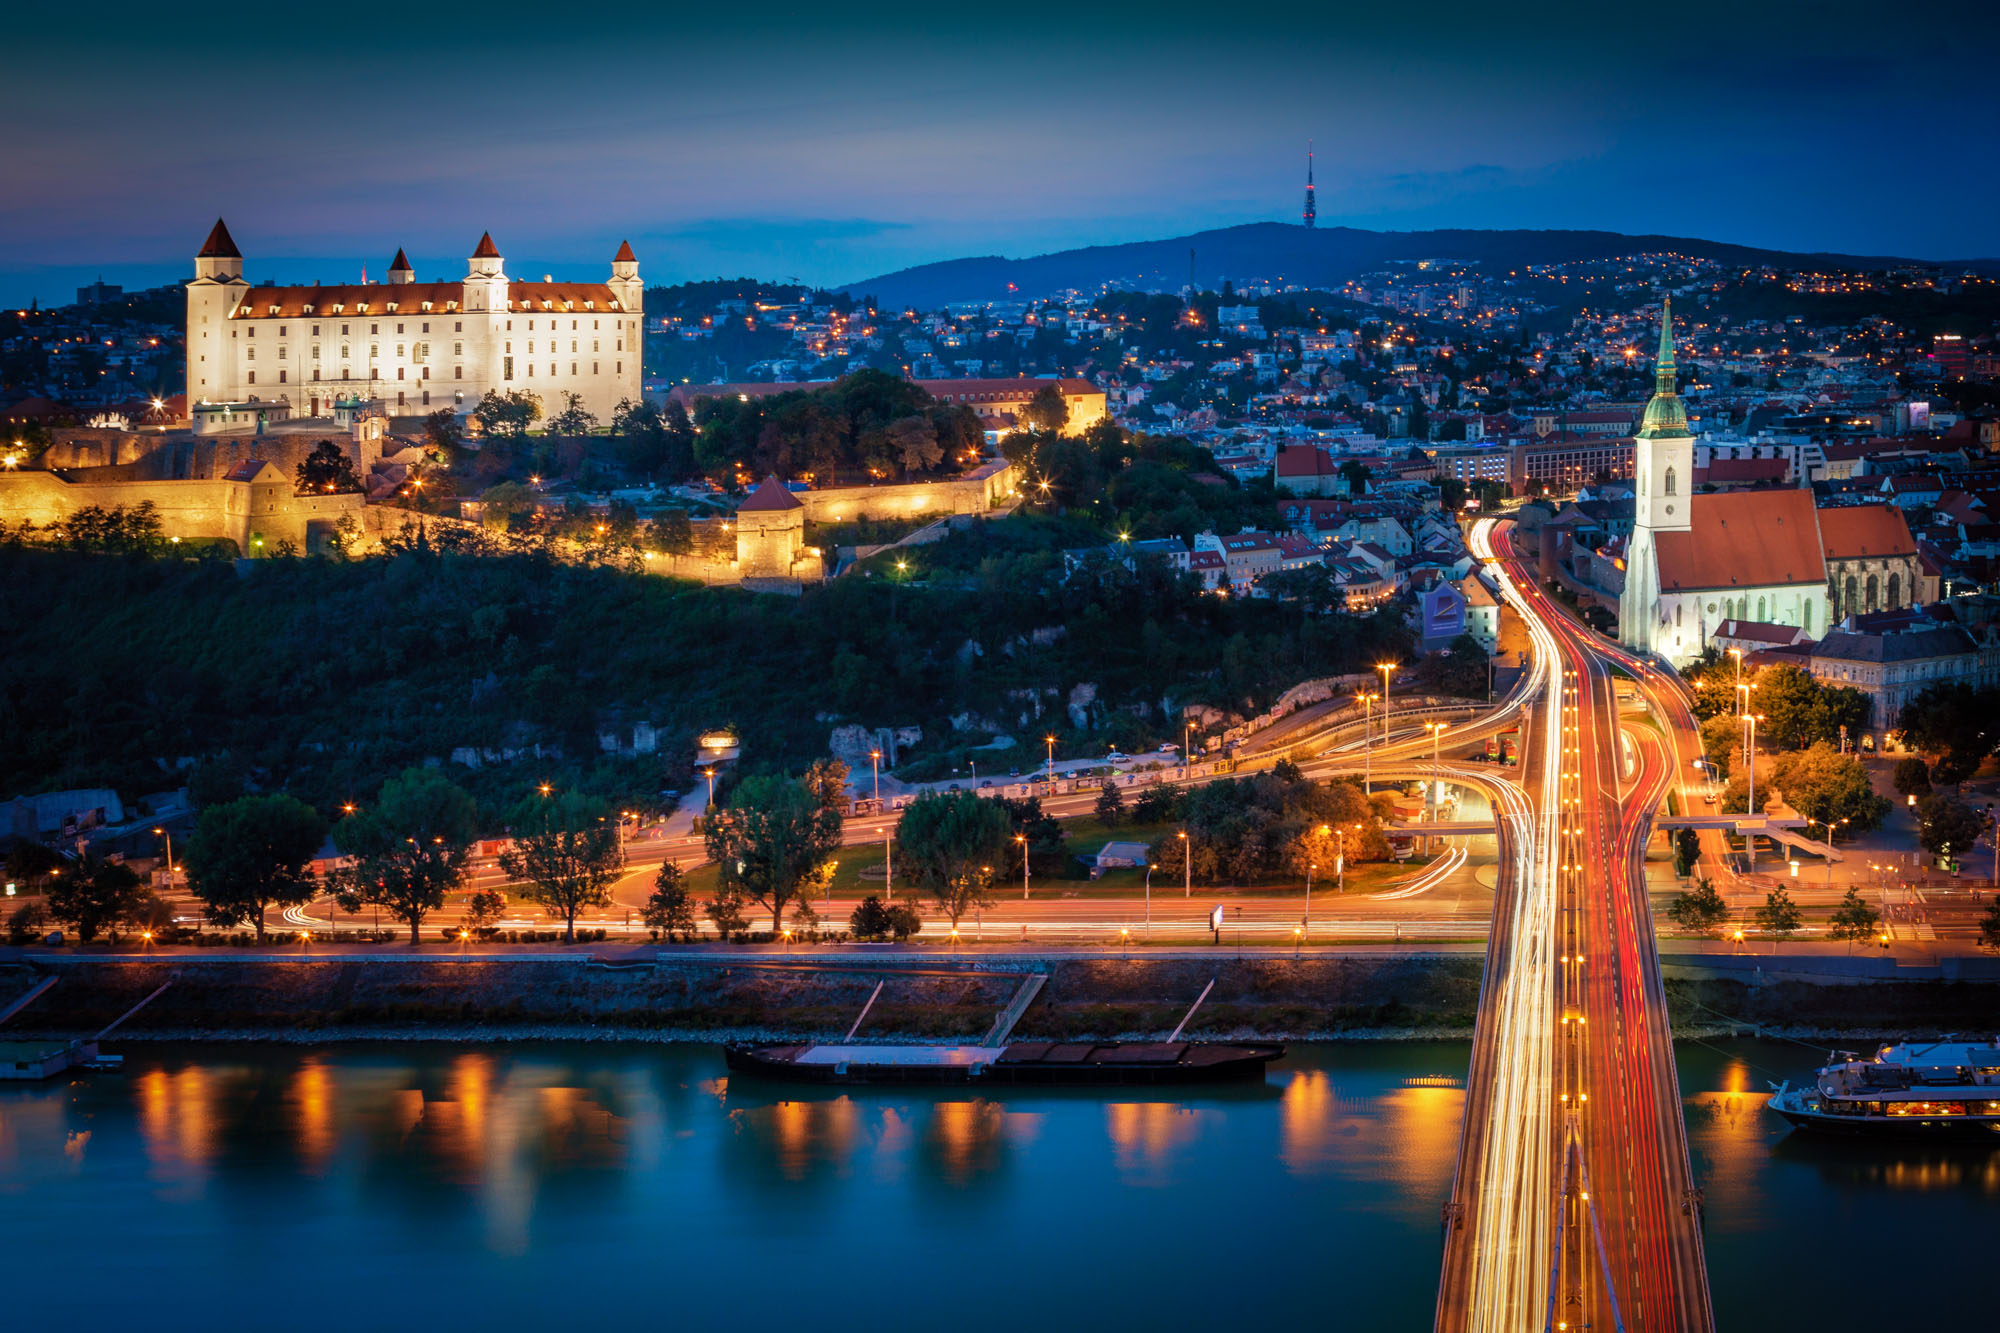 long exposure night photography of Bratislava Castle and Church illuminated at night by the River Danube and with traffic light trails viewed from above